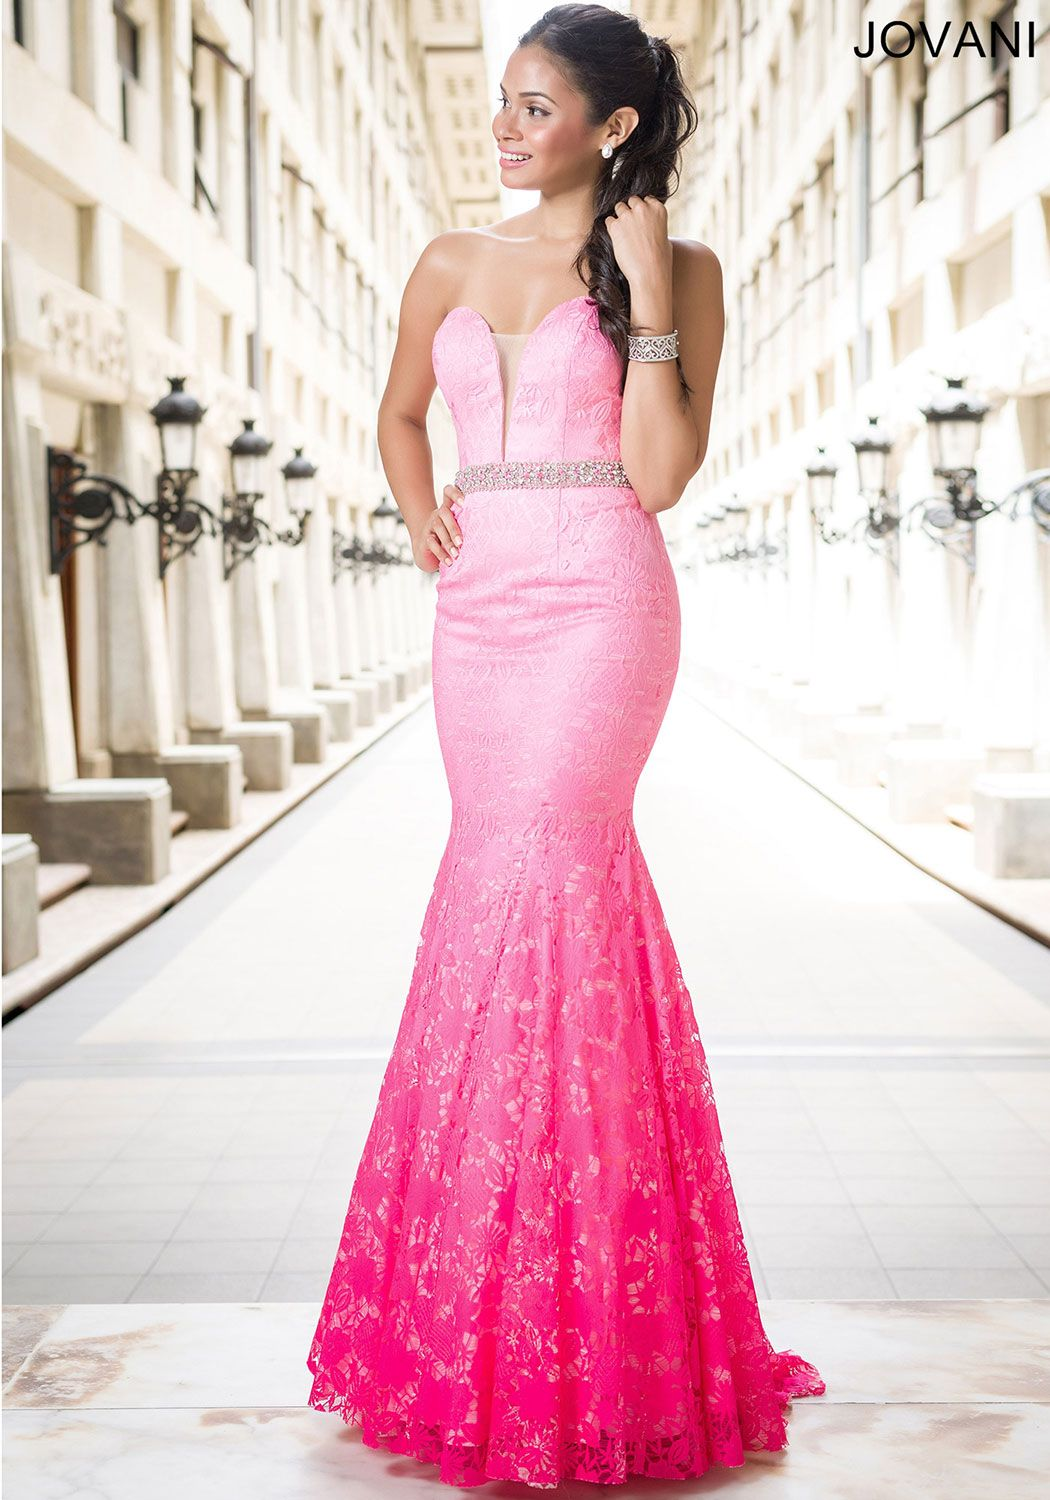 lexibrazelton this may be available at A finer moment. 2016 Jovani ...